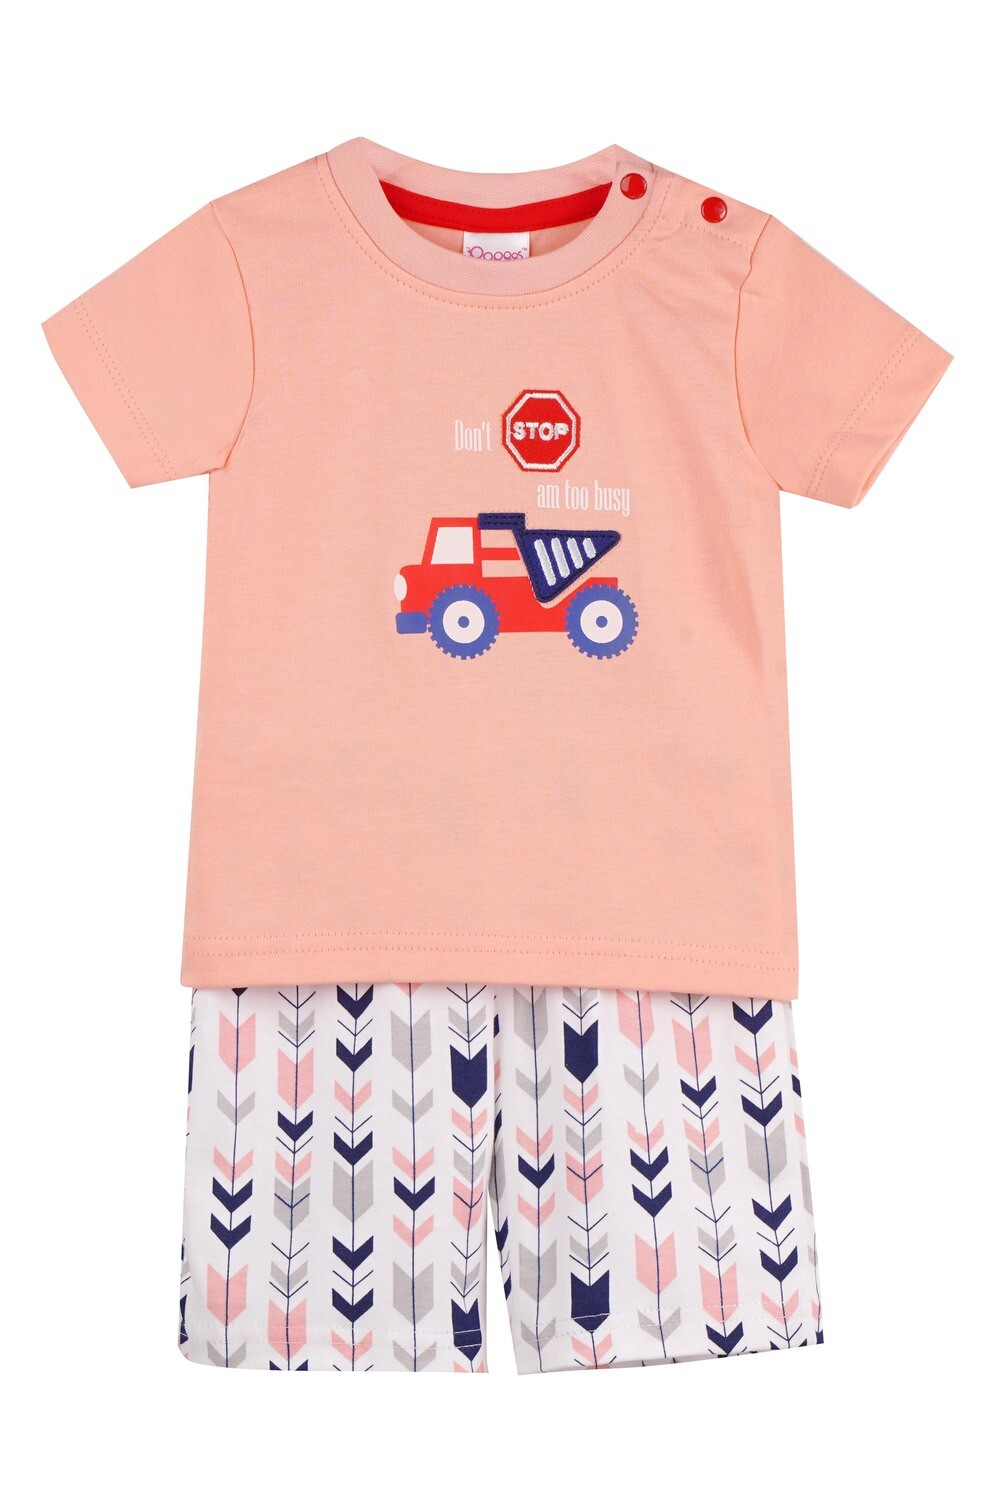 WARREN Apricot Blush Top and Trouser Half Sleeves for Baby Boys